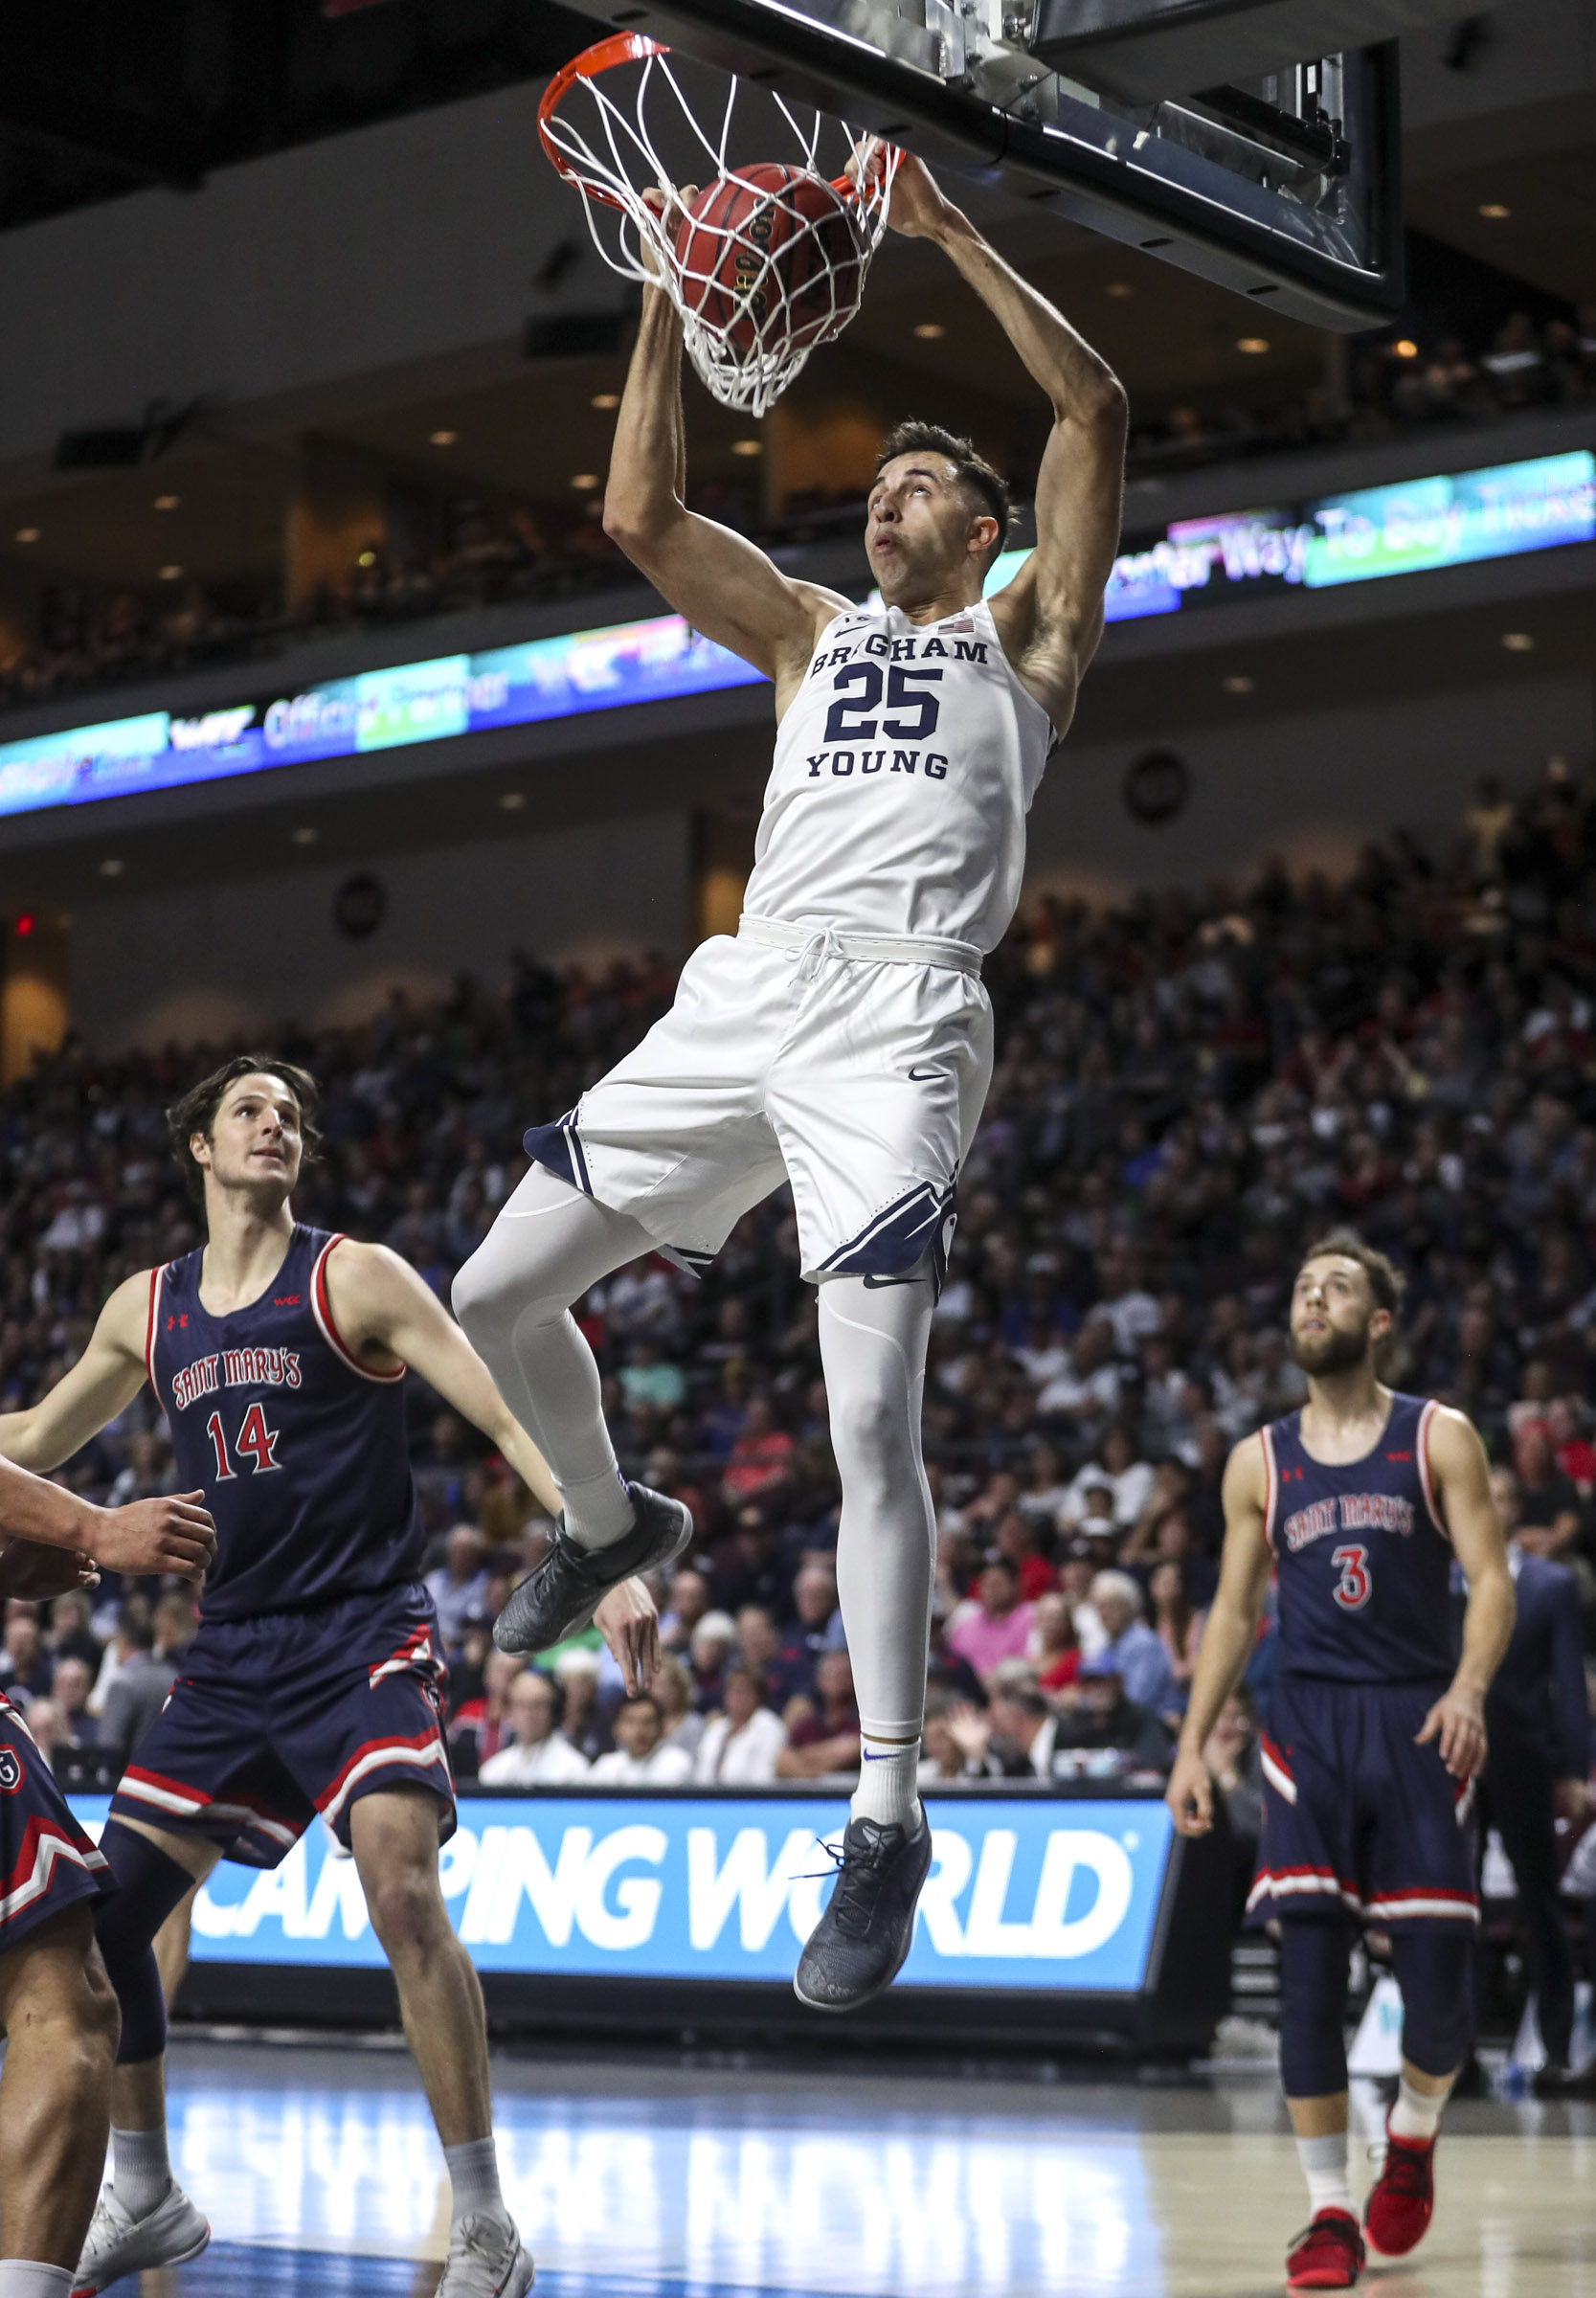 Brigham Young Cougars forward Gavin Baxter (25) throws down a dunk during the BYU and Saint Mary's WCC semifinal game at the Orleans Arena in Las Vegas on Monday, March 9, 2020.